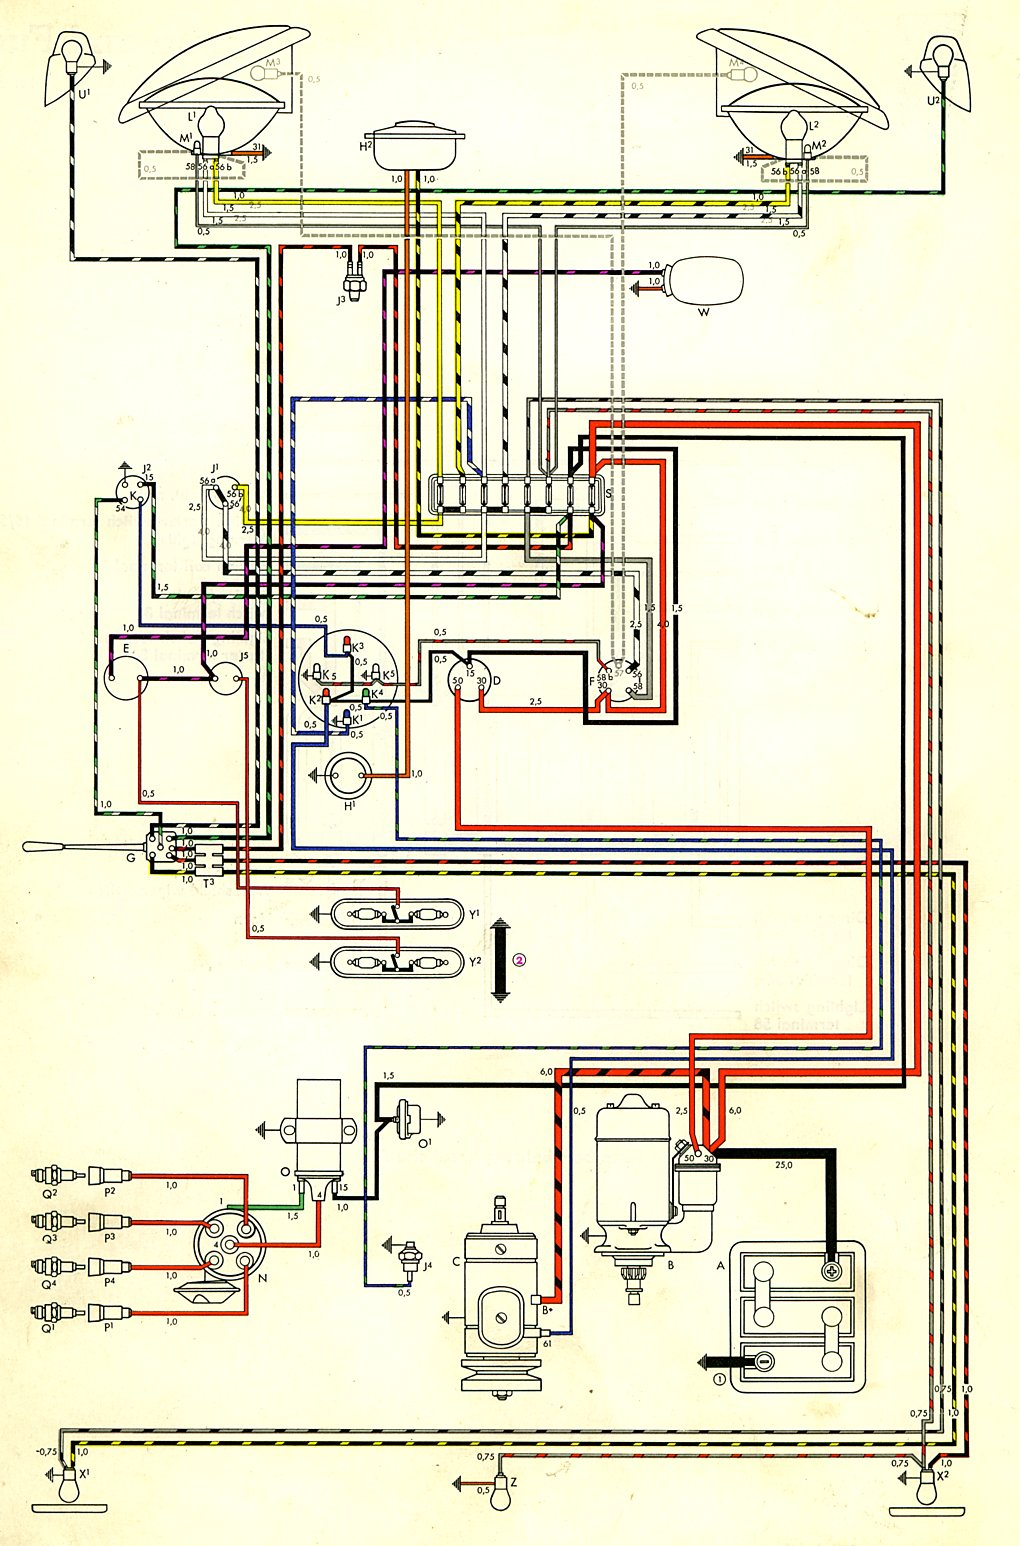 1971 chevy truck ignition wiring diagram starting know about rh prezzy co 1971 ford f100 ignition [ 1020 x 1546 Pixel ]